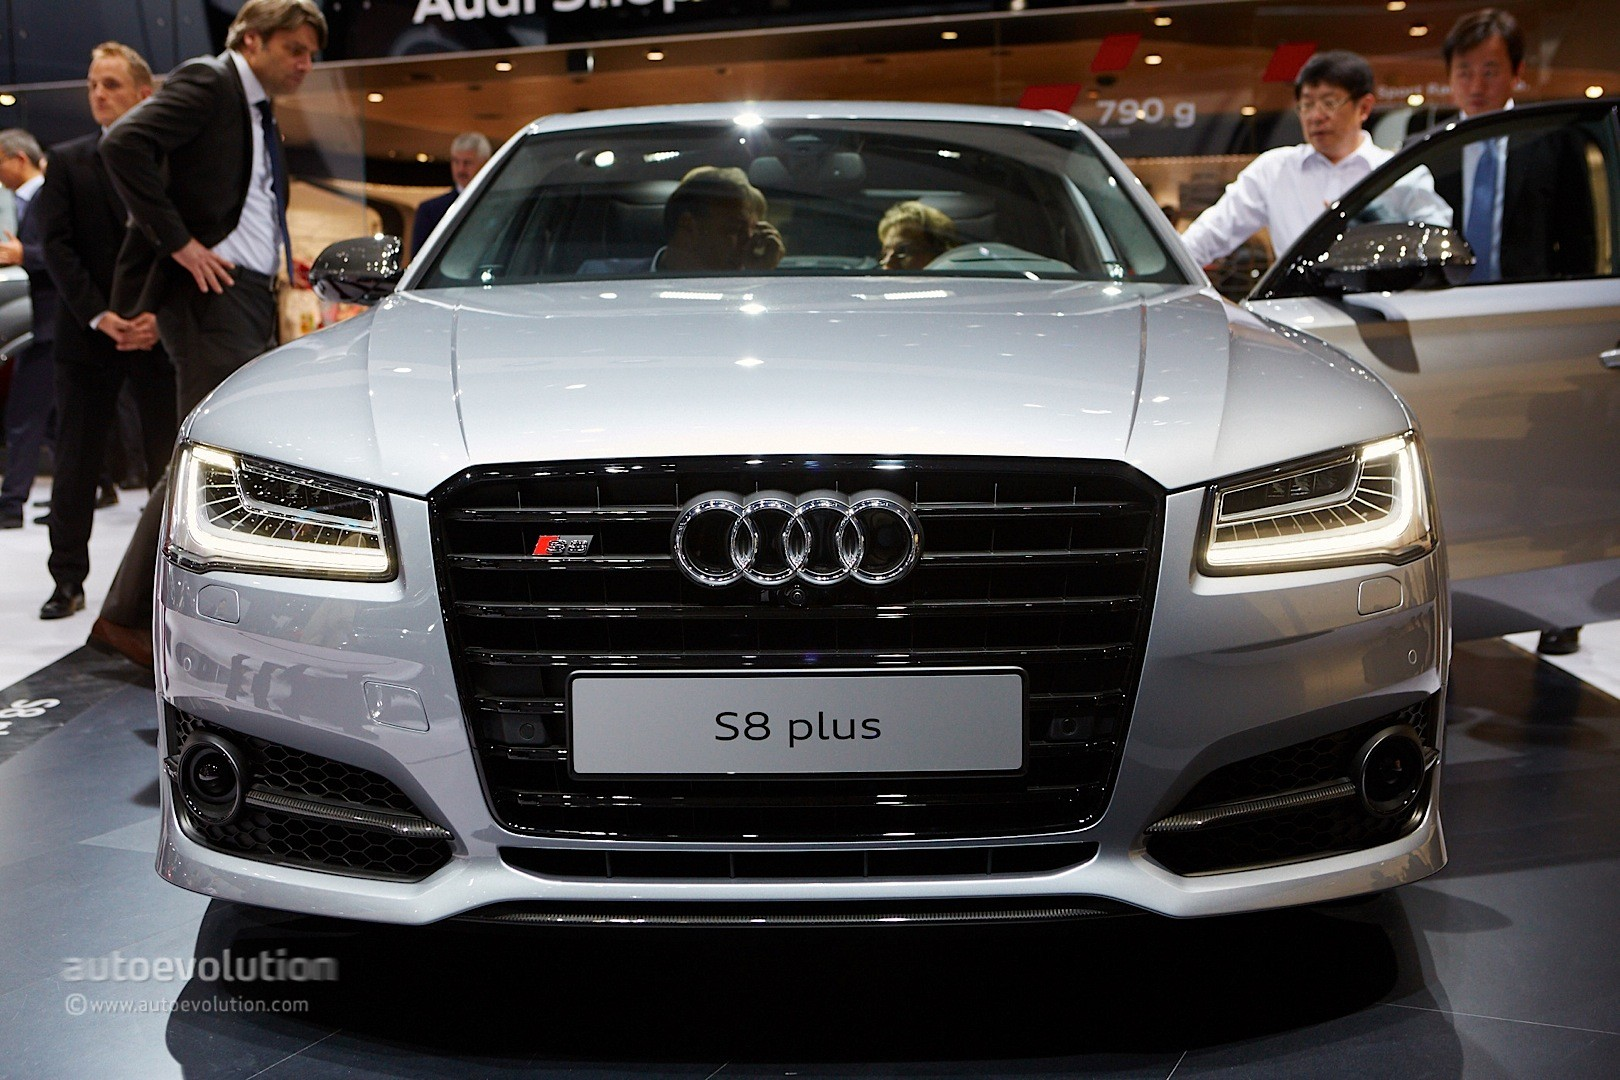 2018 audi s8 plus.  audi 2016 audi s8 plus live photos from frankfurt 2015 inside 2018 audi s8 plus u